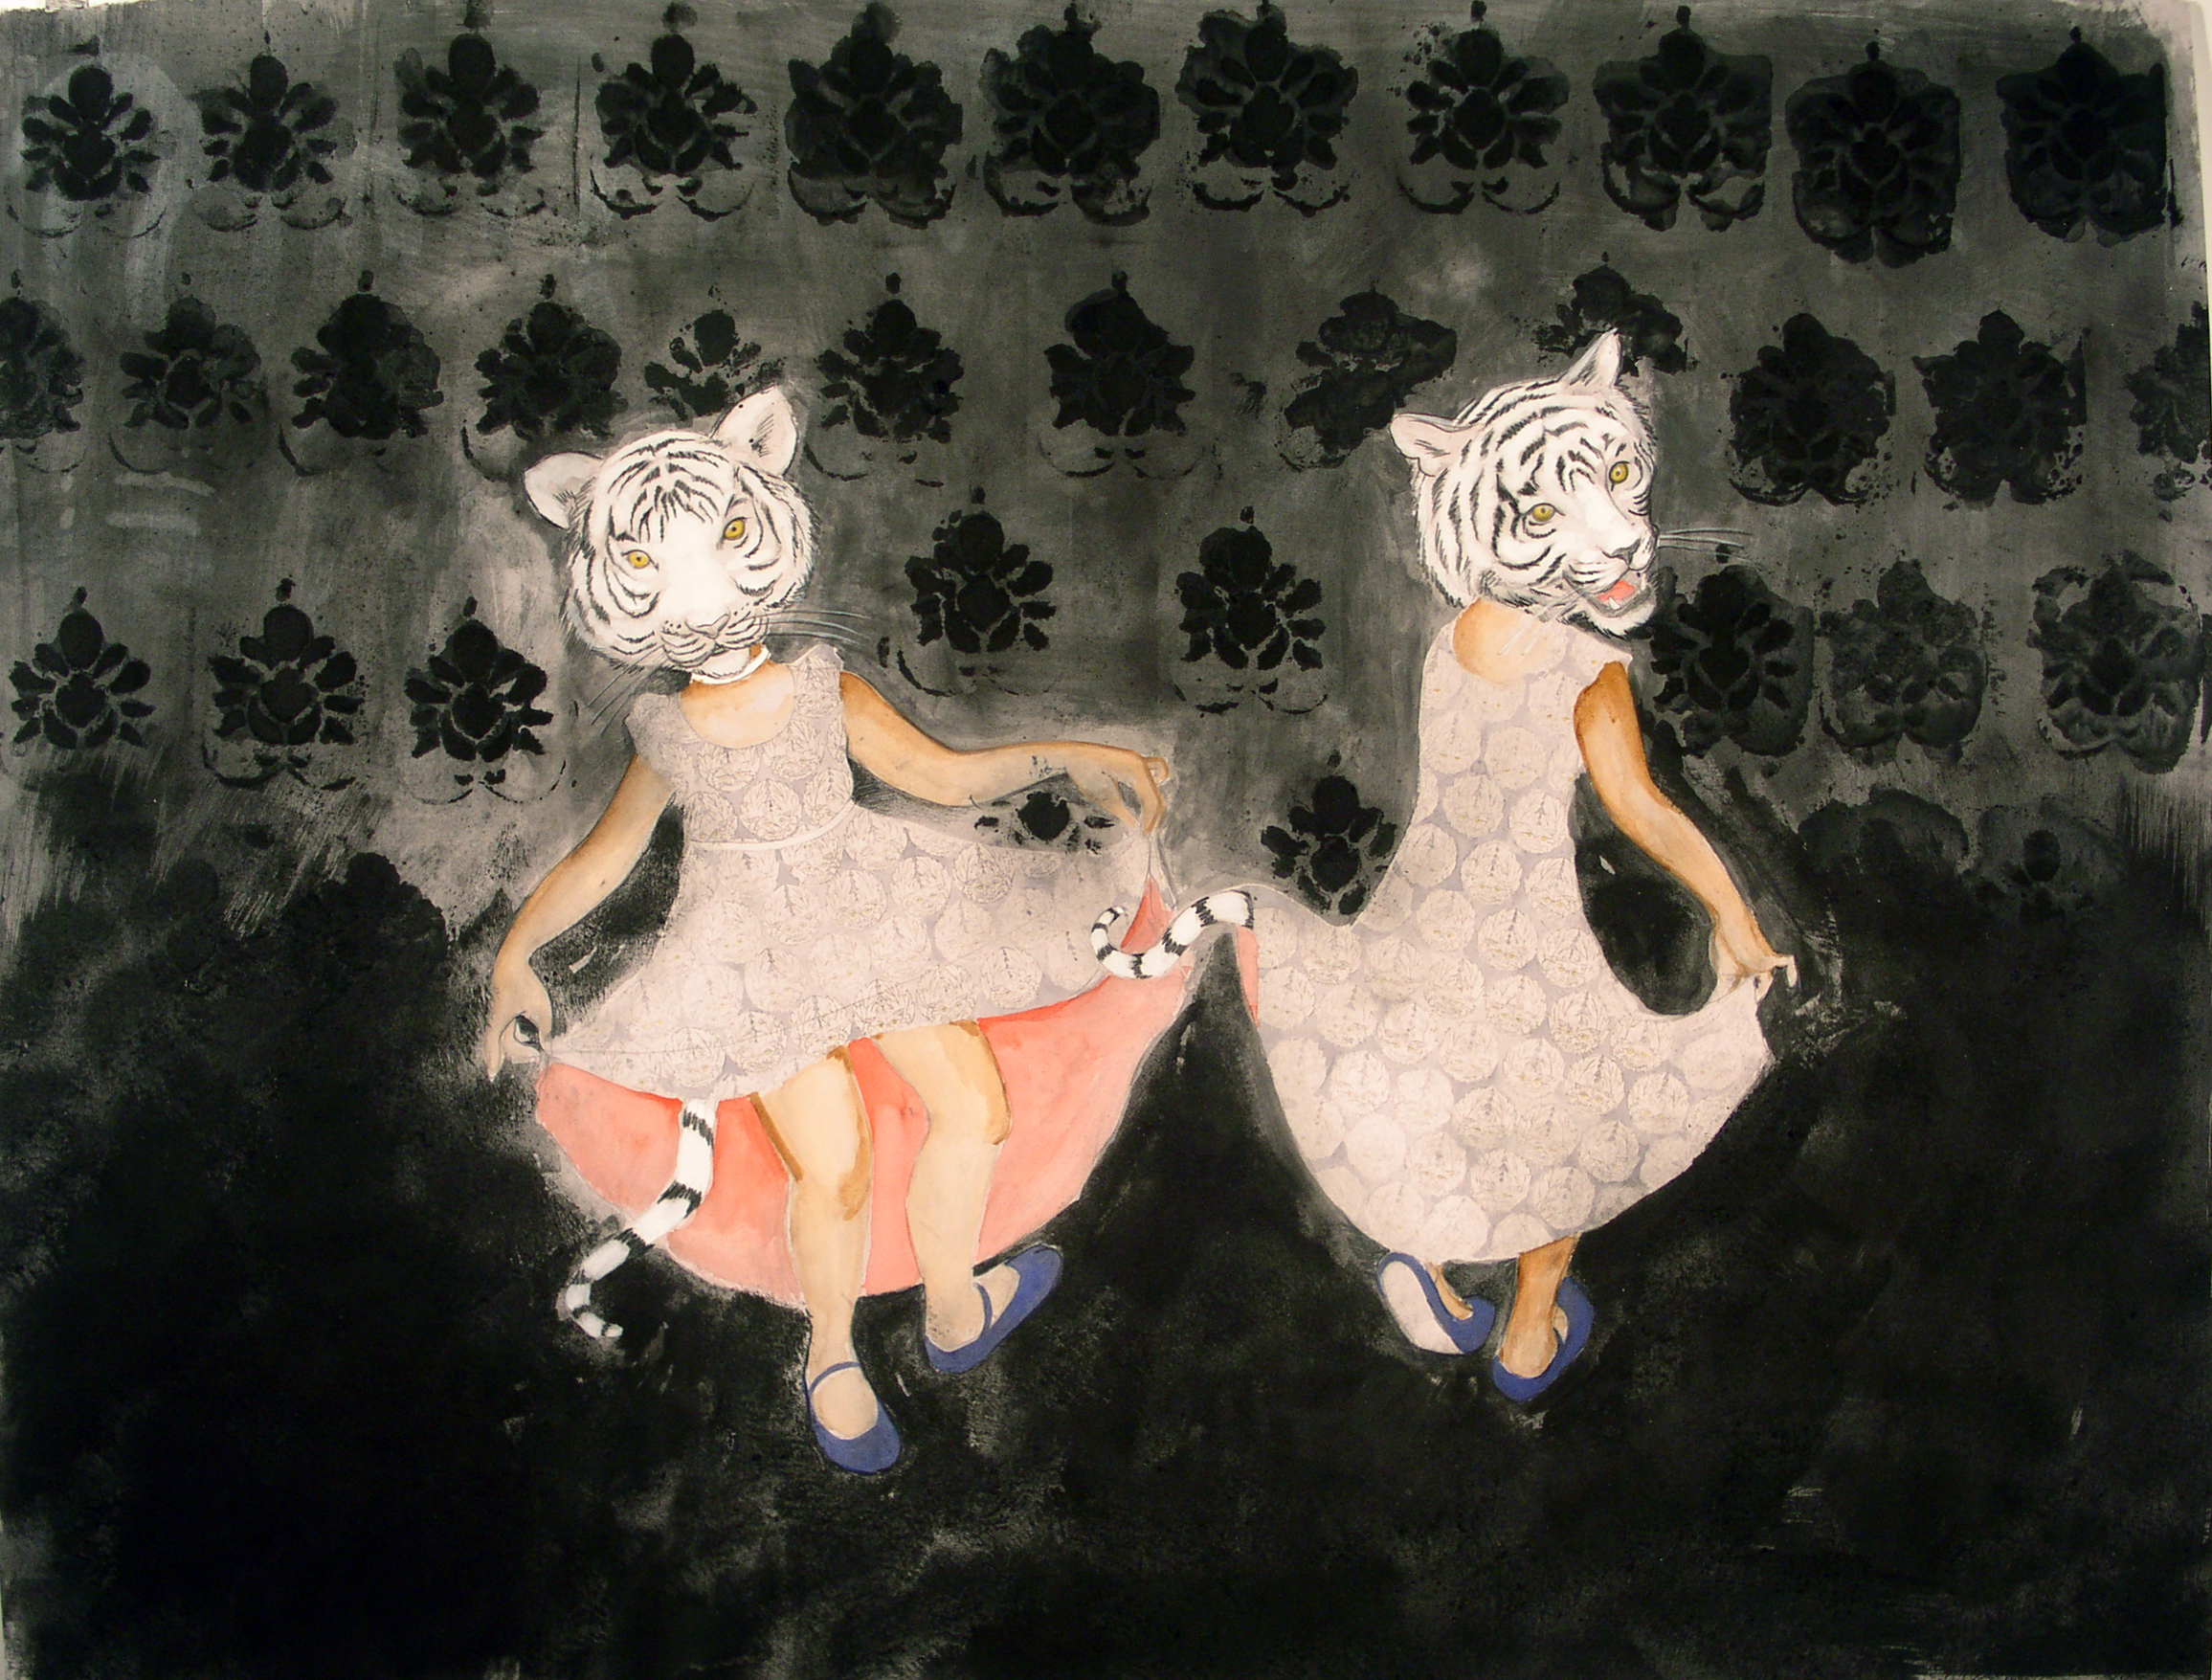 Tiger Girls , 2005 Charcoal, glue, graphite, ink and watercolor on gray paper 38 X 50 inches Private collection